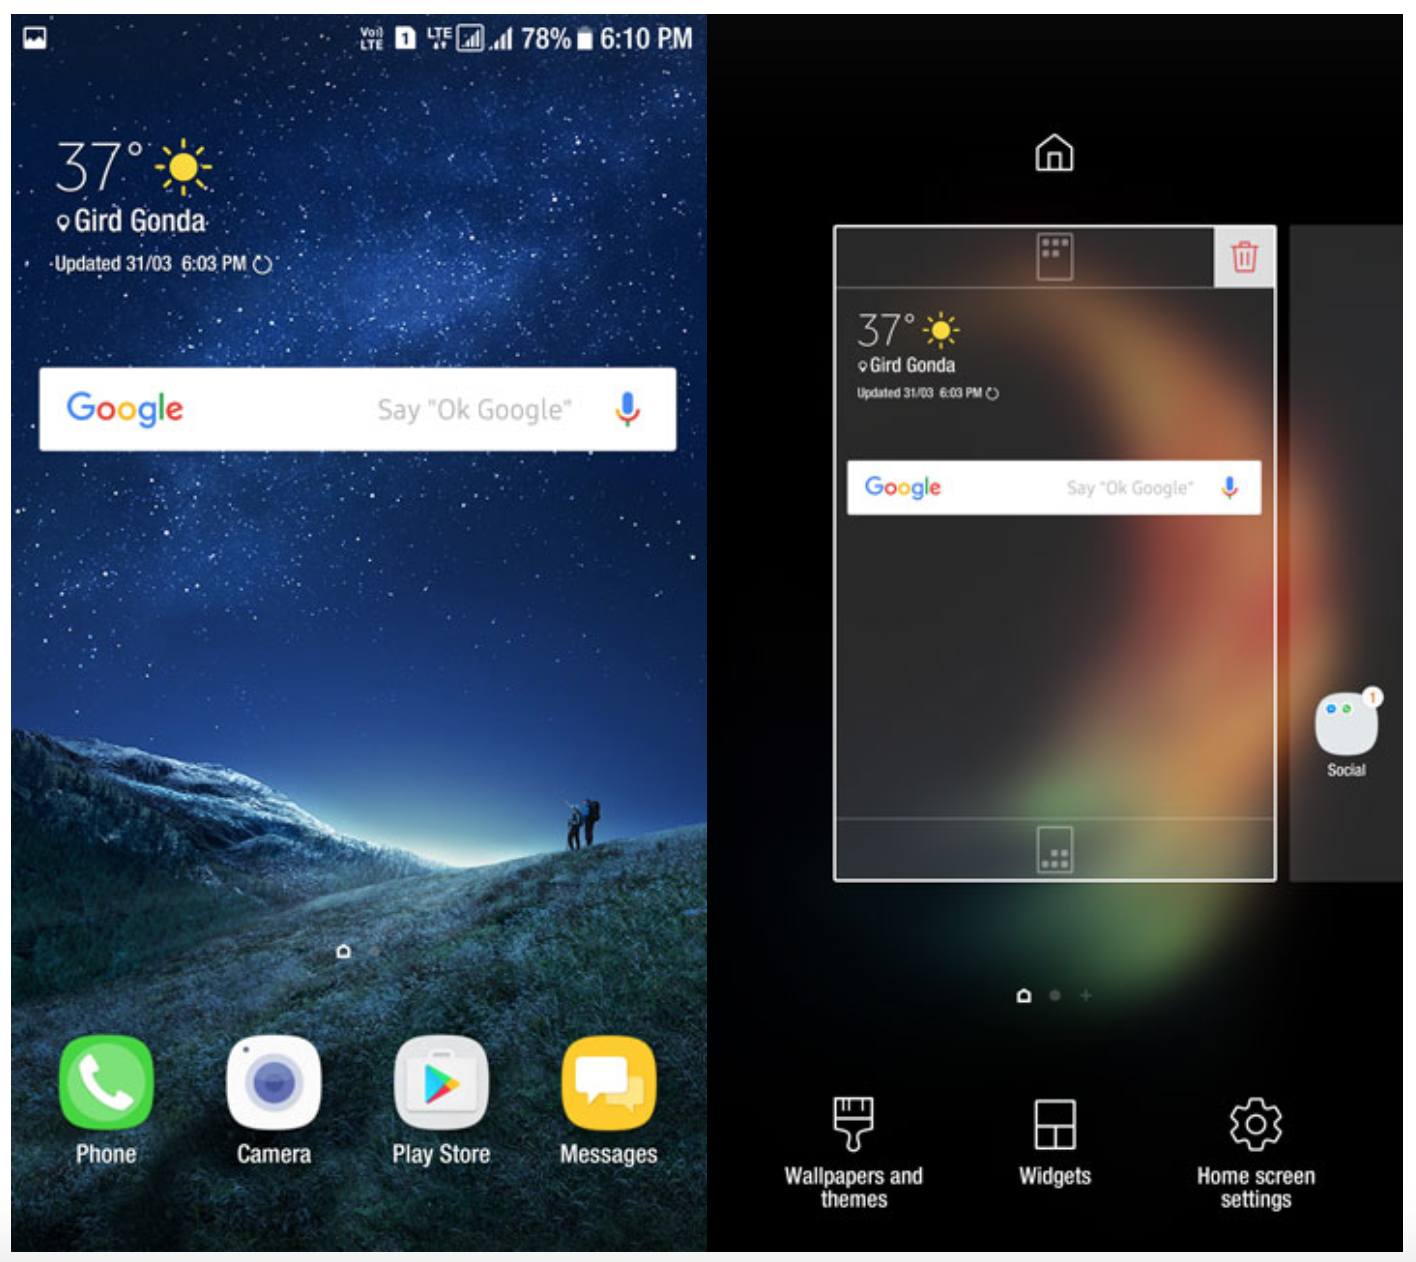 redmi note 3 launcher apk download